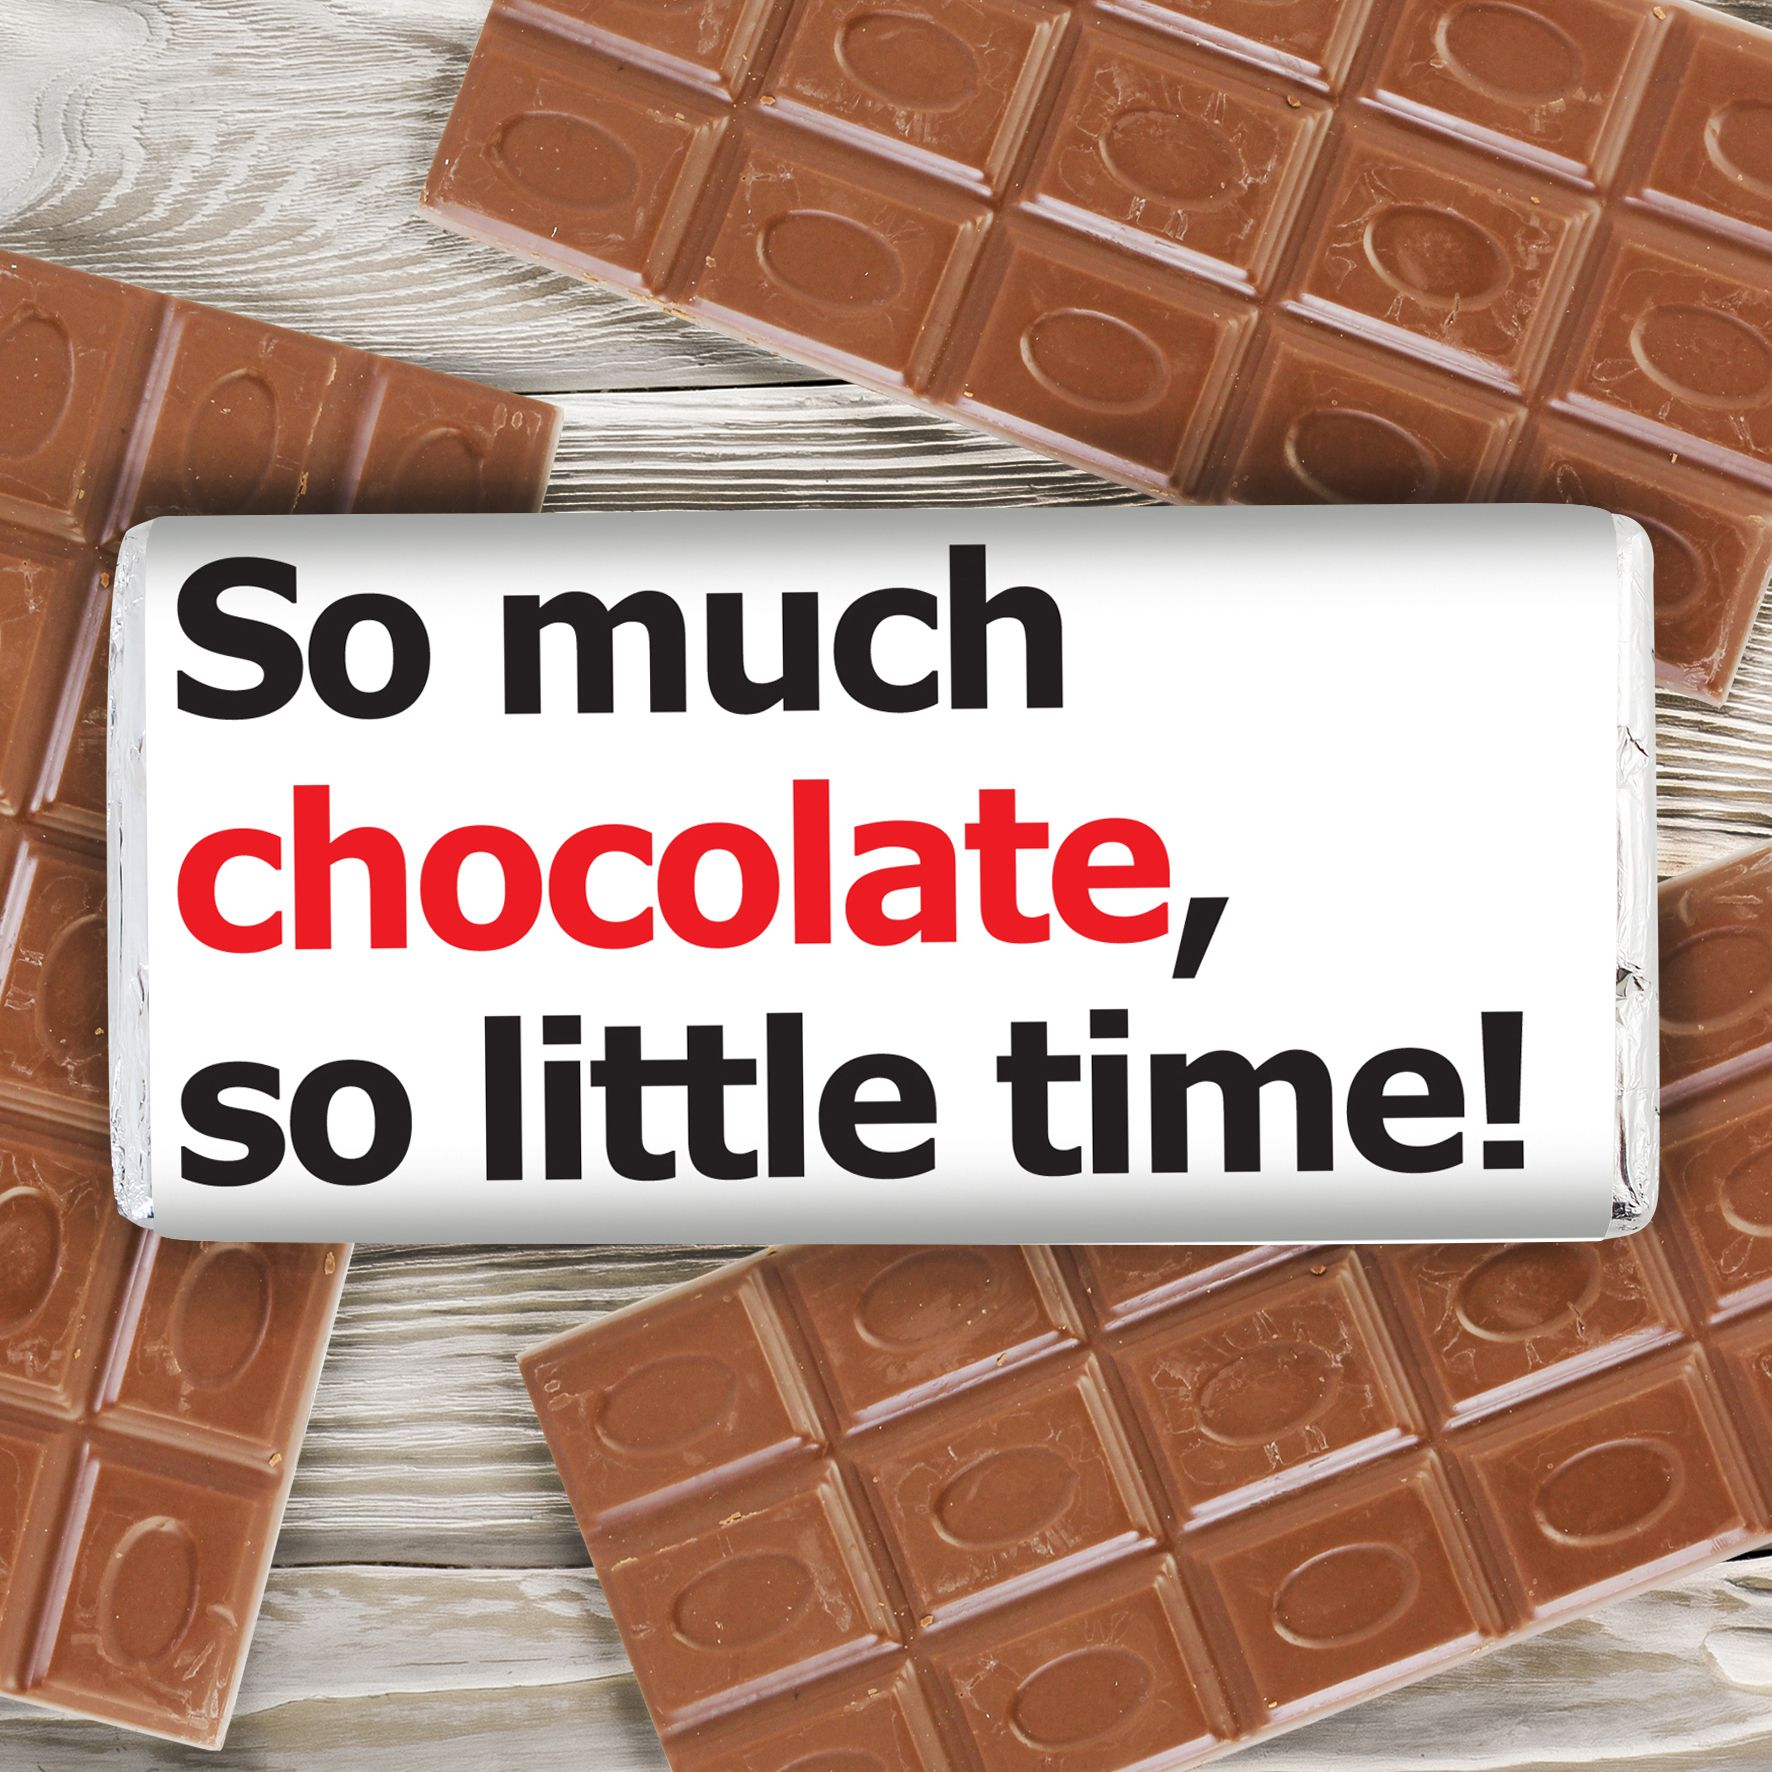 So Much Chocolate Slogan Chocolate Bar | Slogans | Pinterest